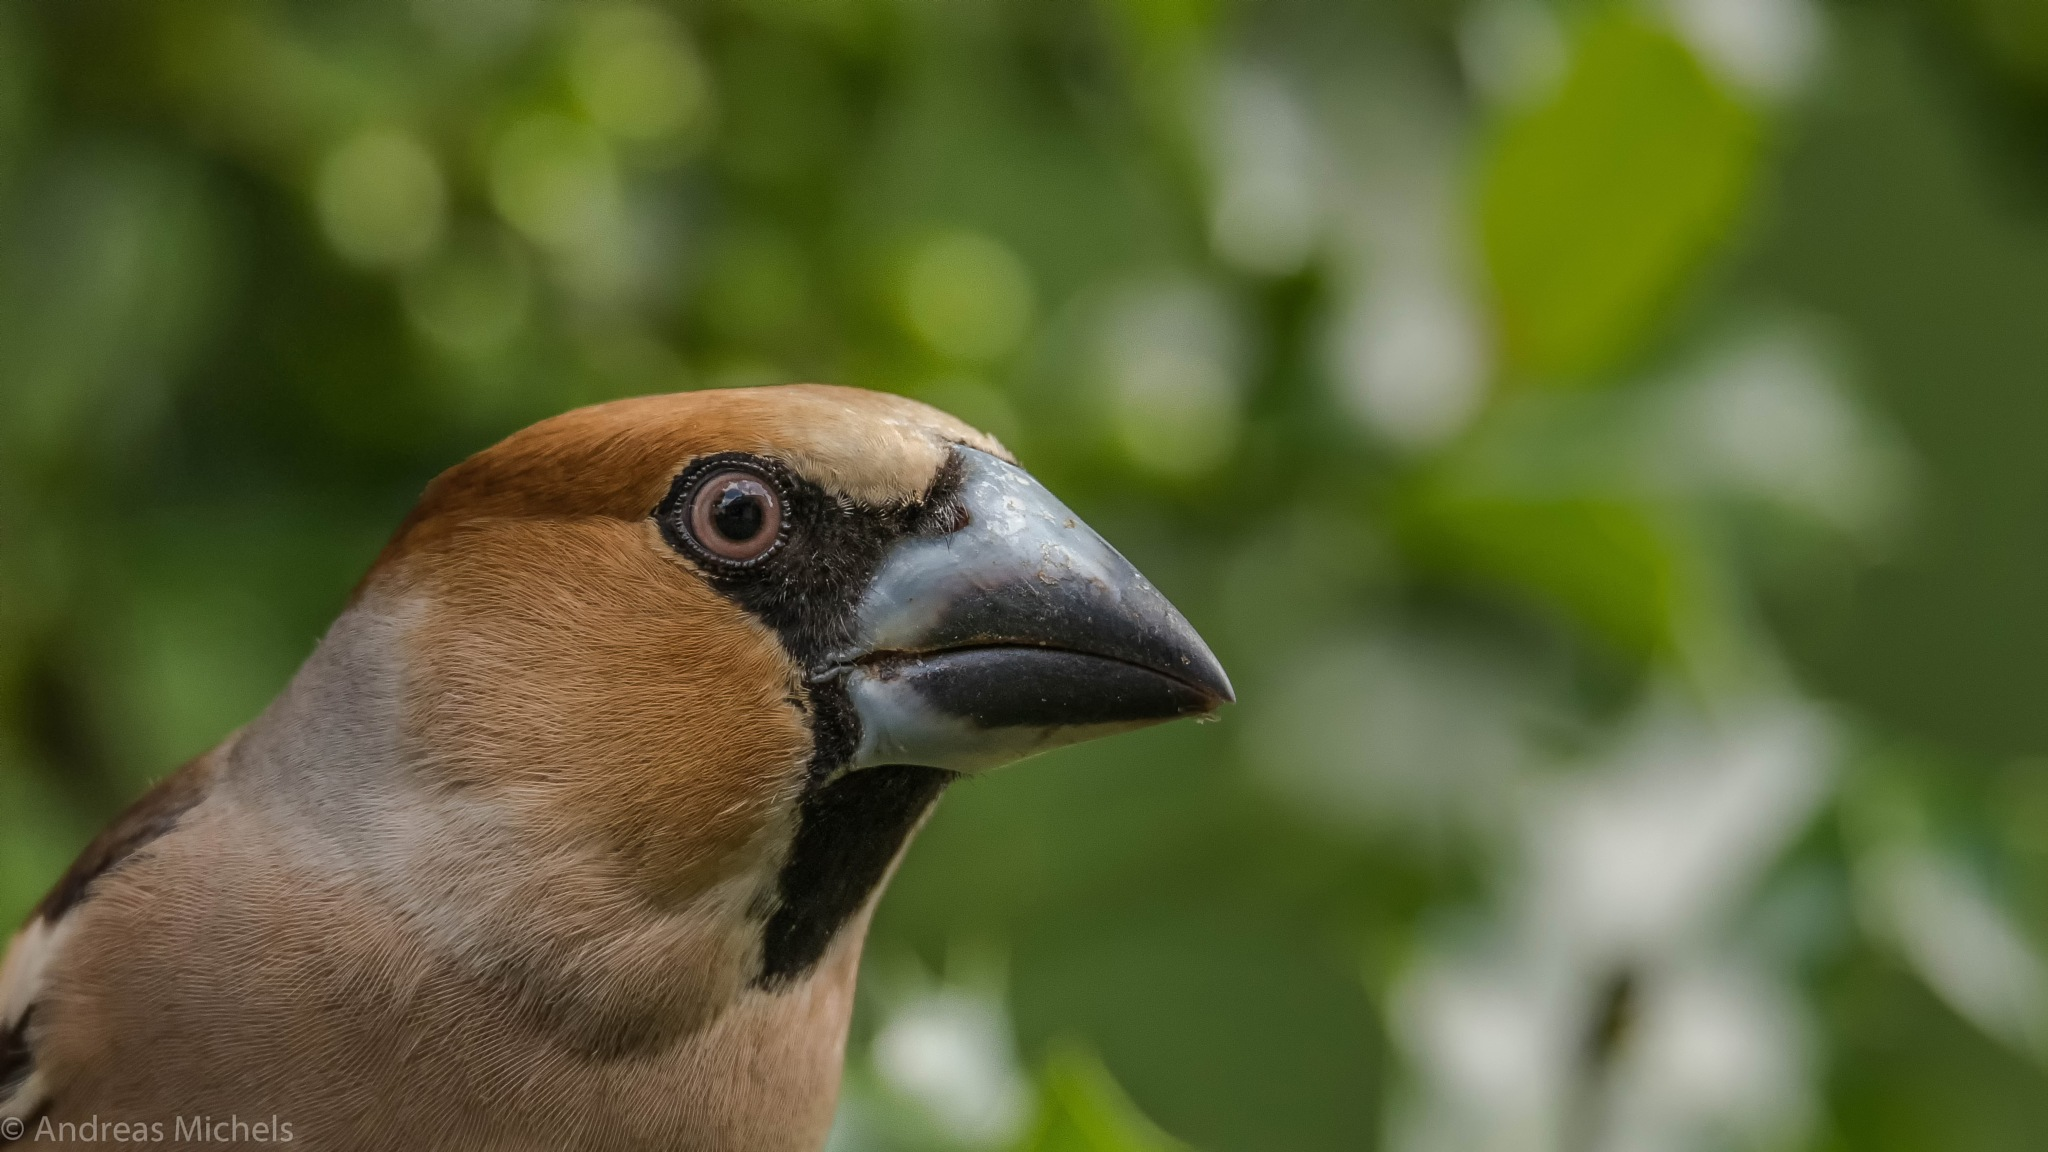 Hawfinch by Andreas Michels